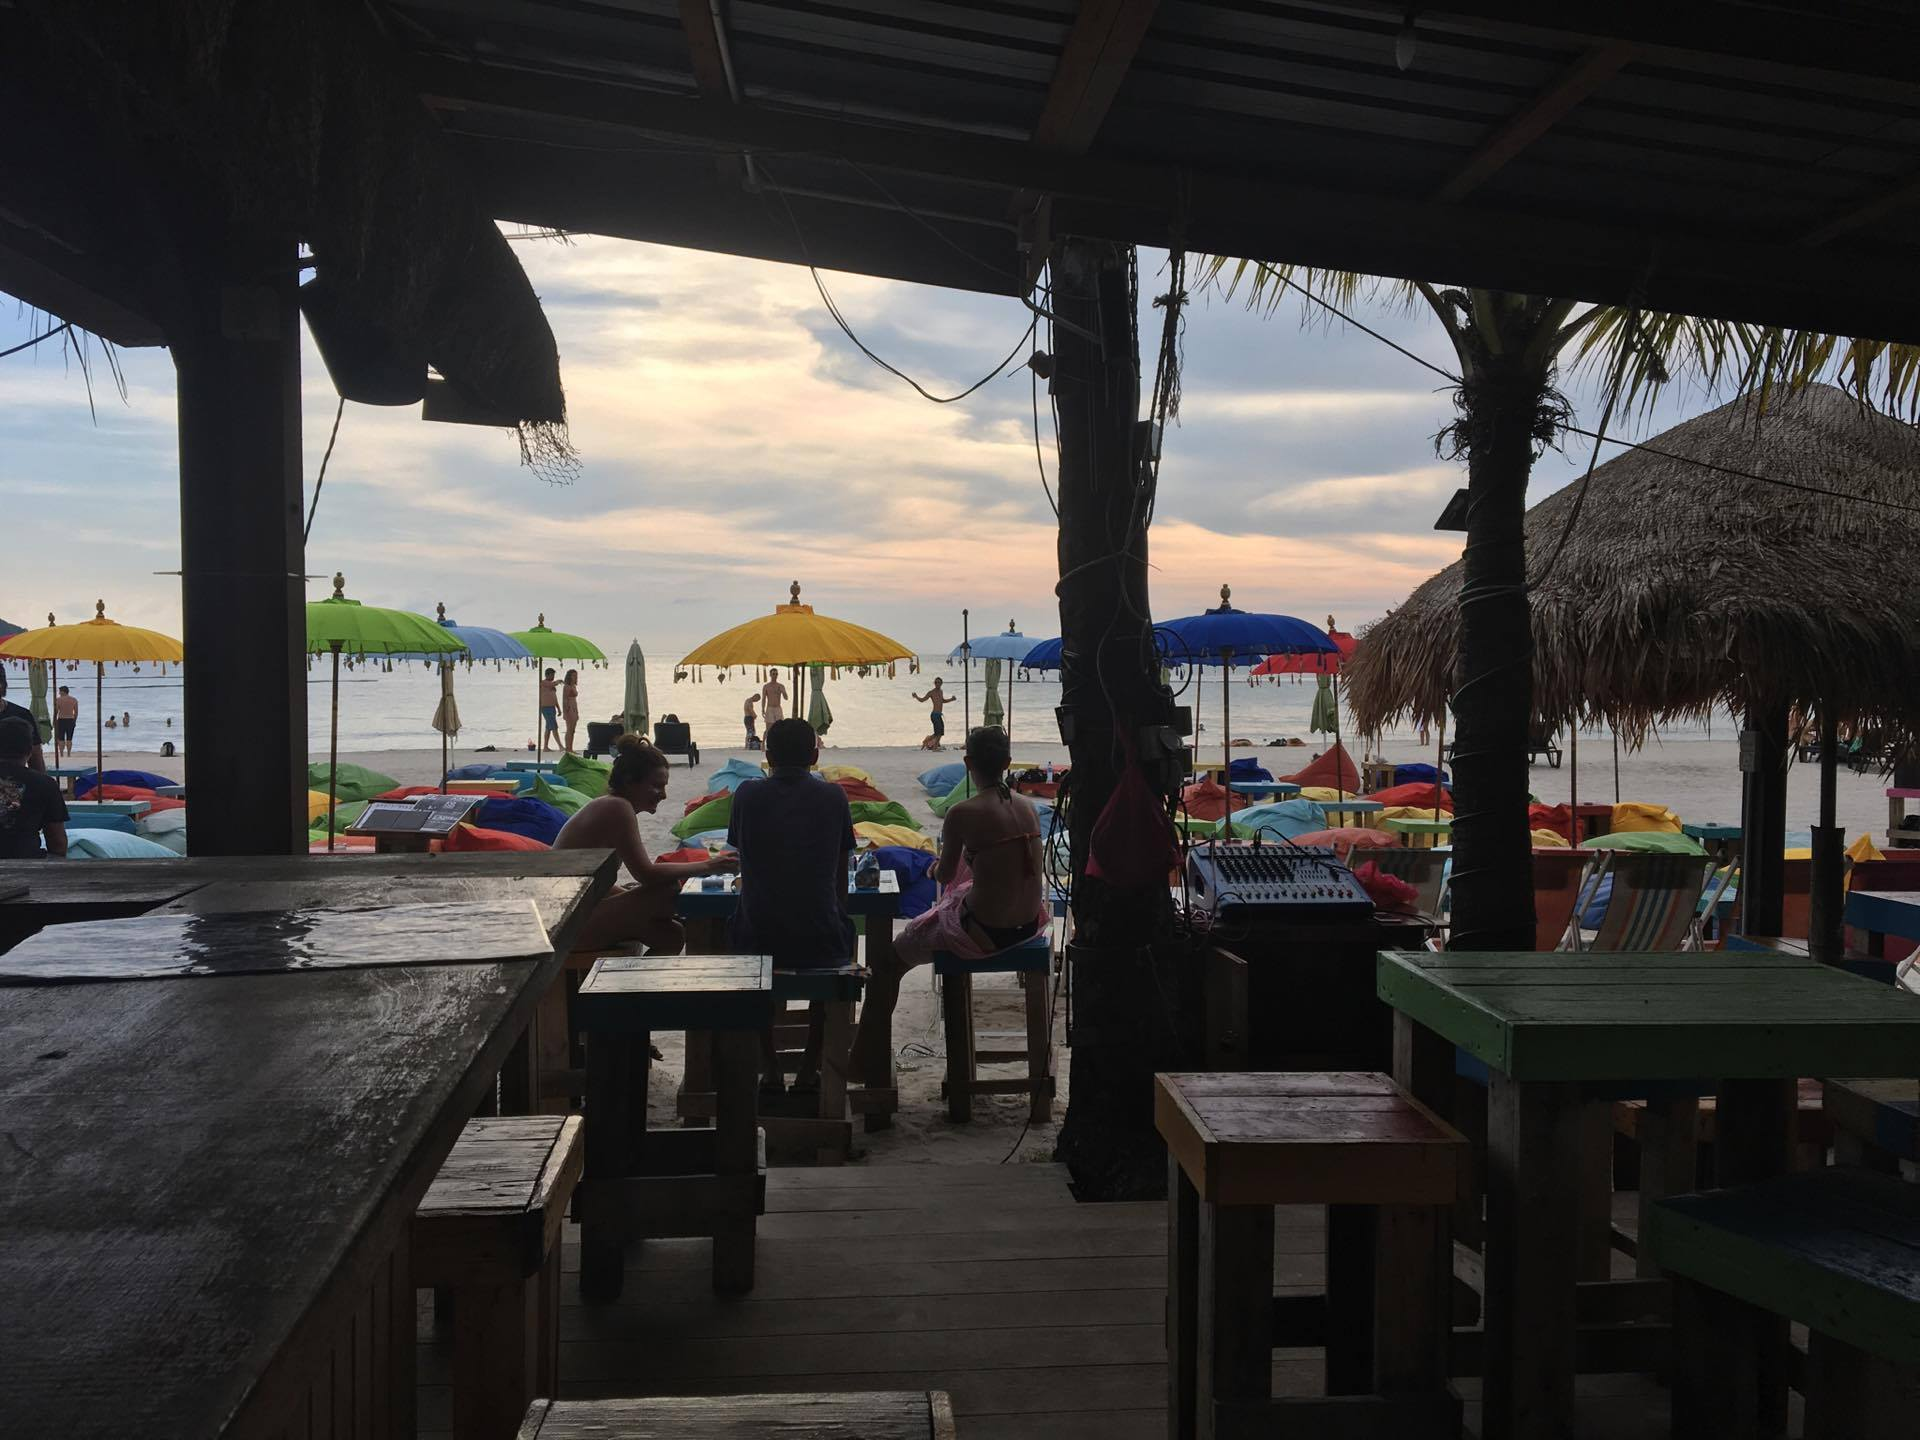 The view from our go-to beach bar in Langkawi, where the owner generously offered me a dj residency.